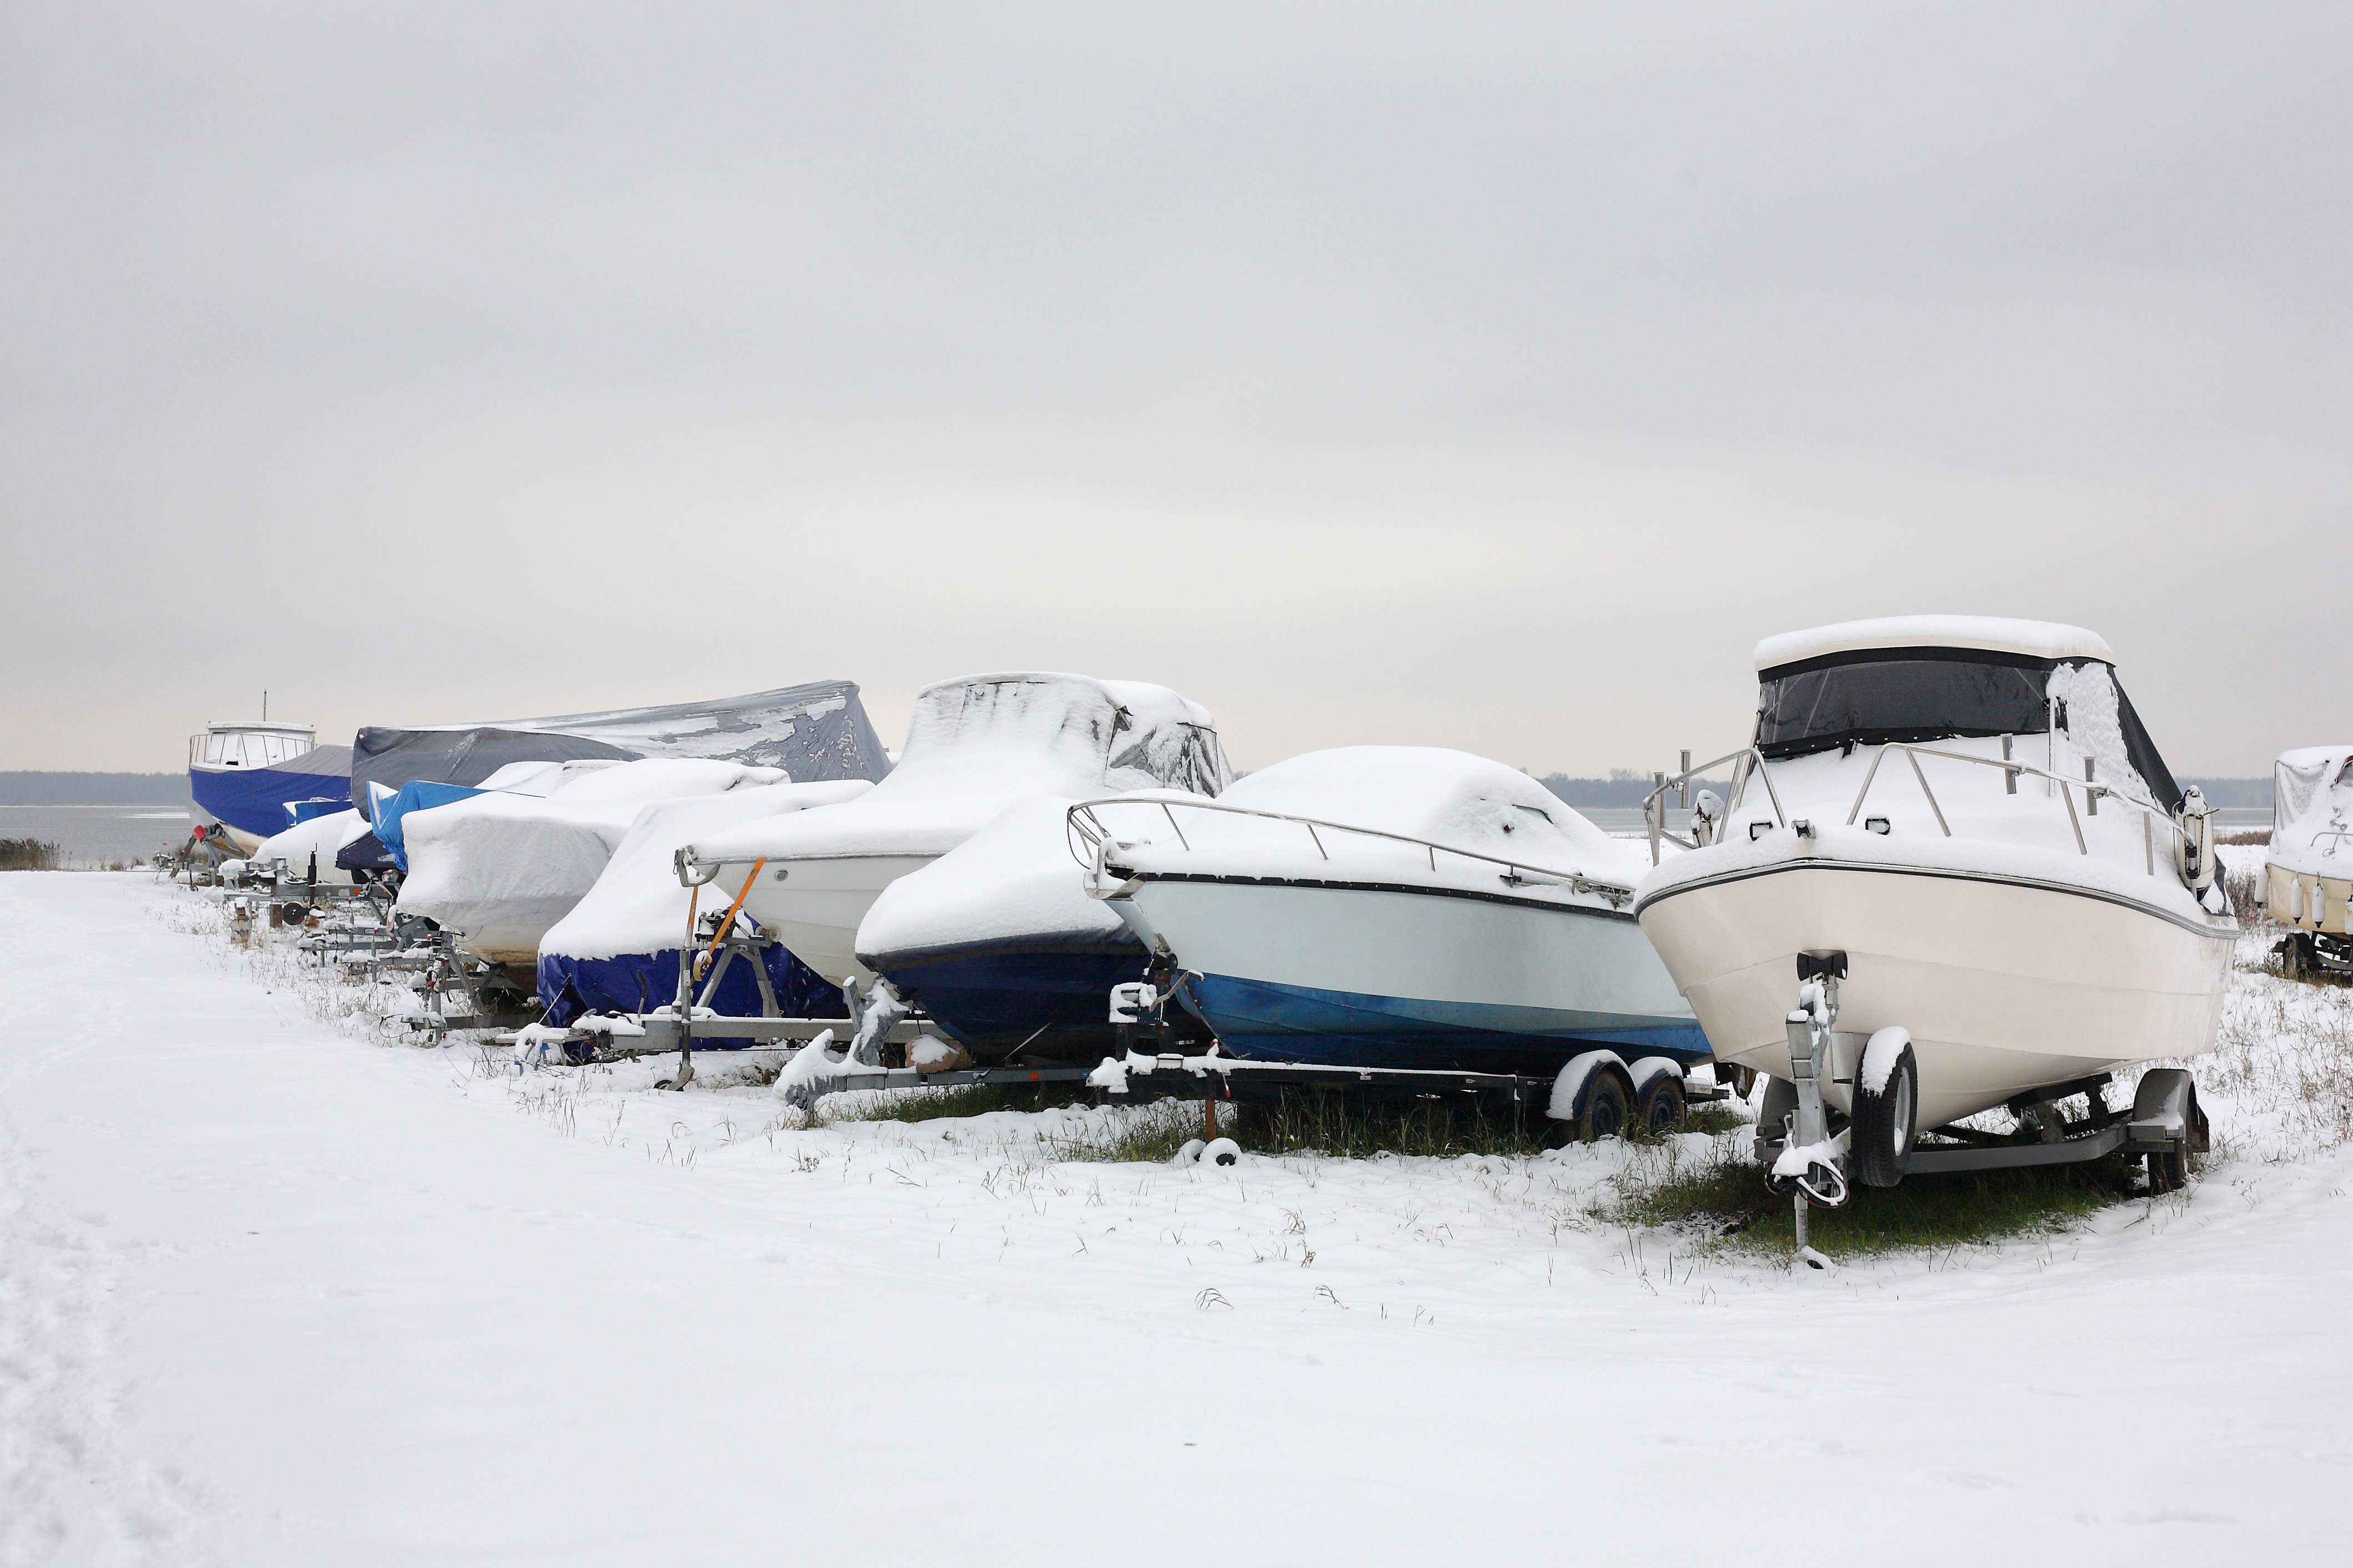 Common Mistakes Made When Storing Your Boat for the Winter